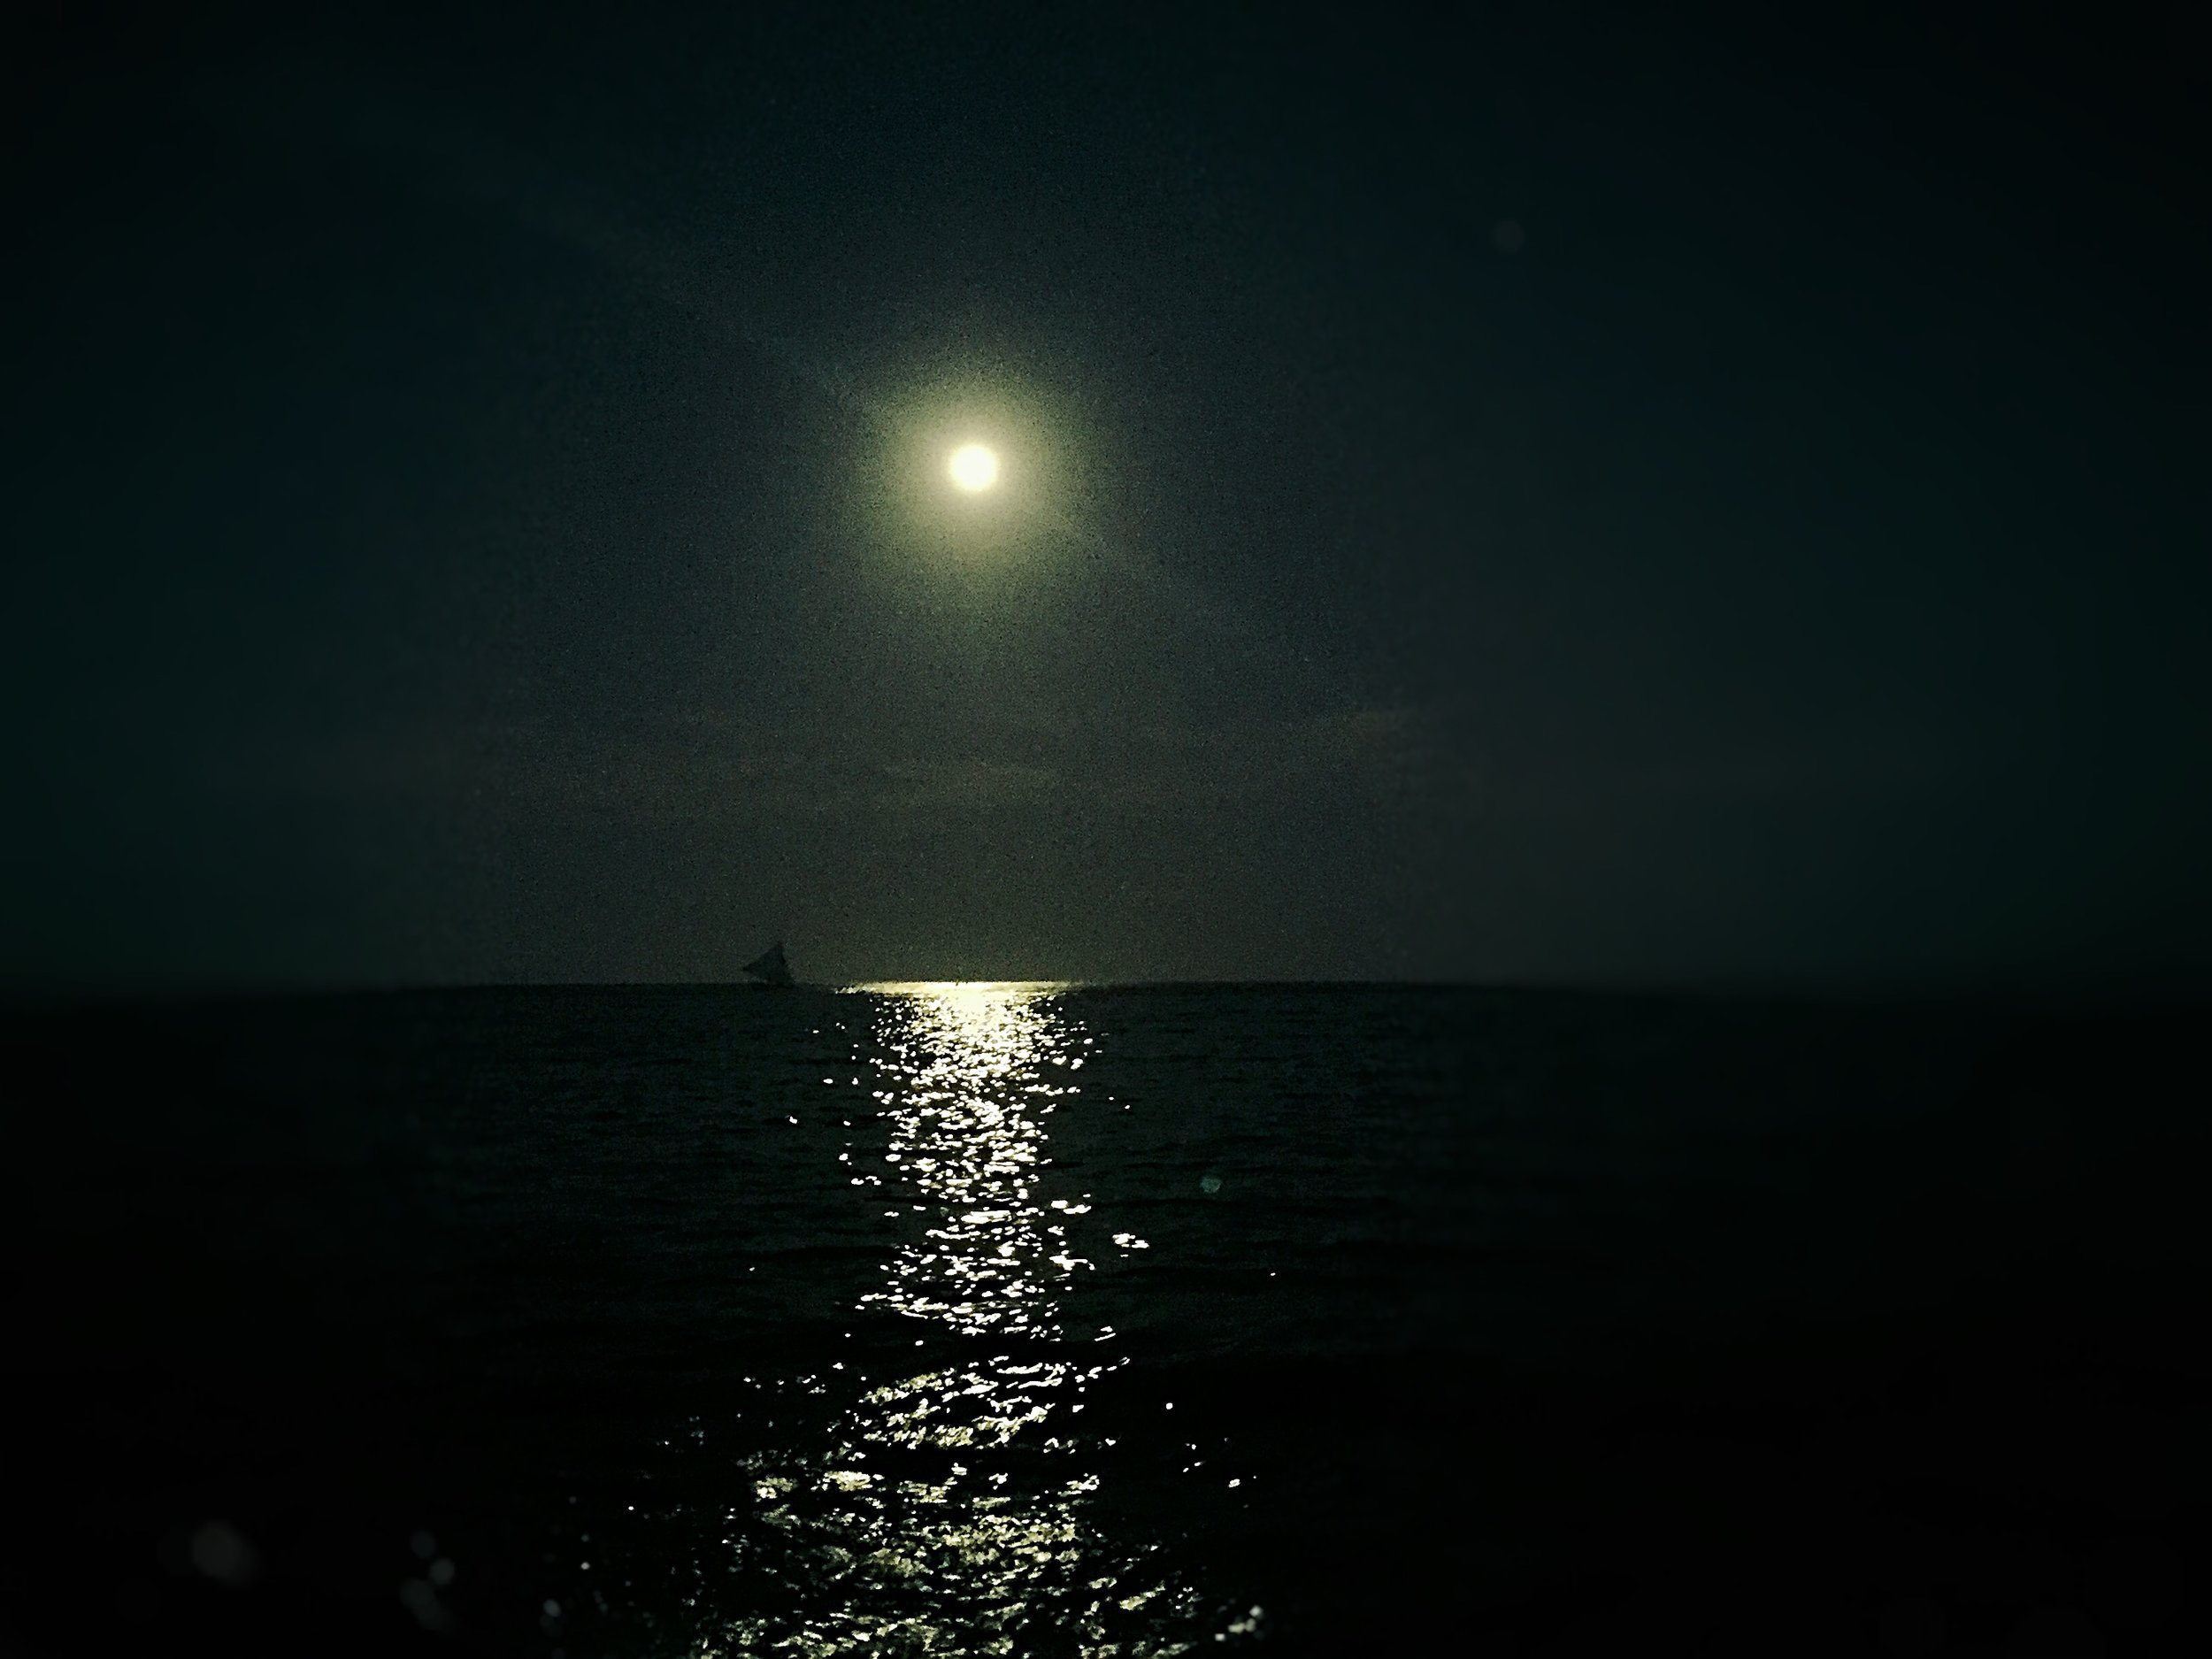 Reflection of the moon.JPG